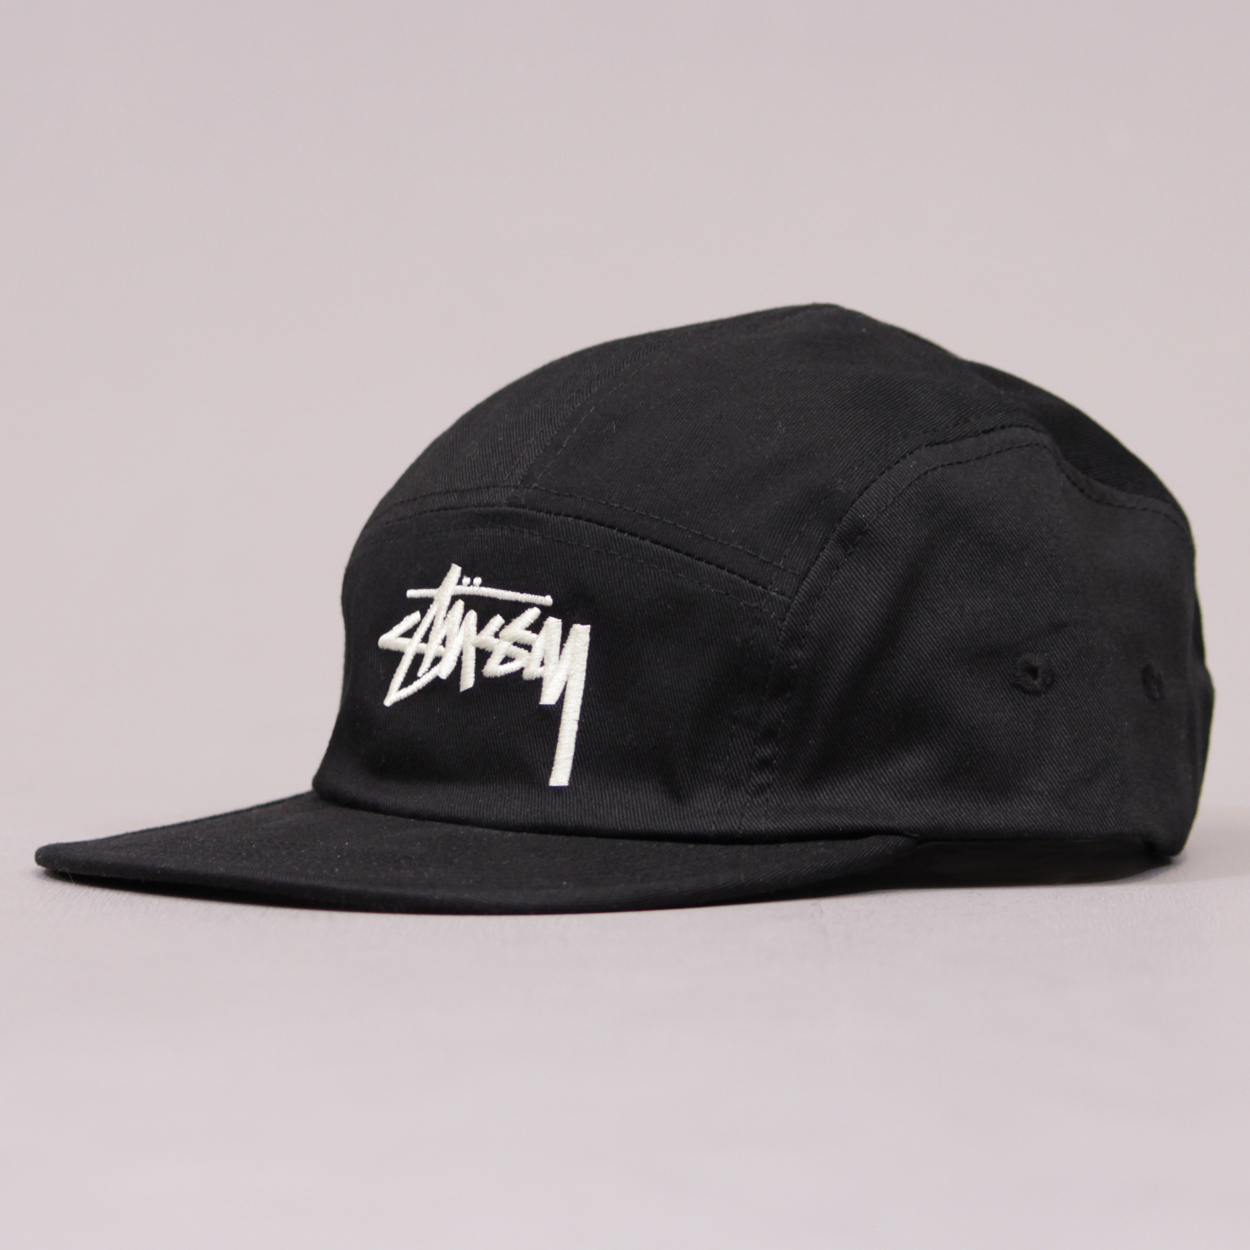 233da9f628a Introducing the Simple 5 Panel Design for a cap which is ready to rock and  roll to give you protection